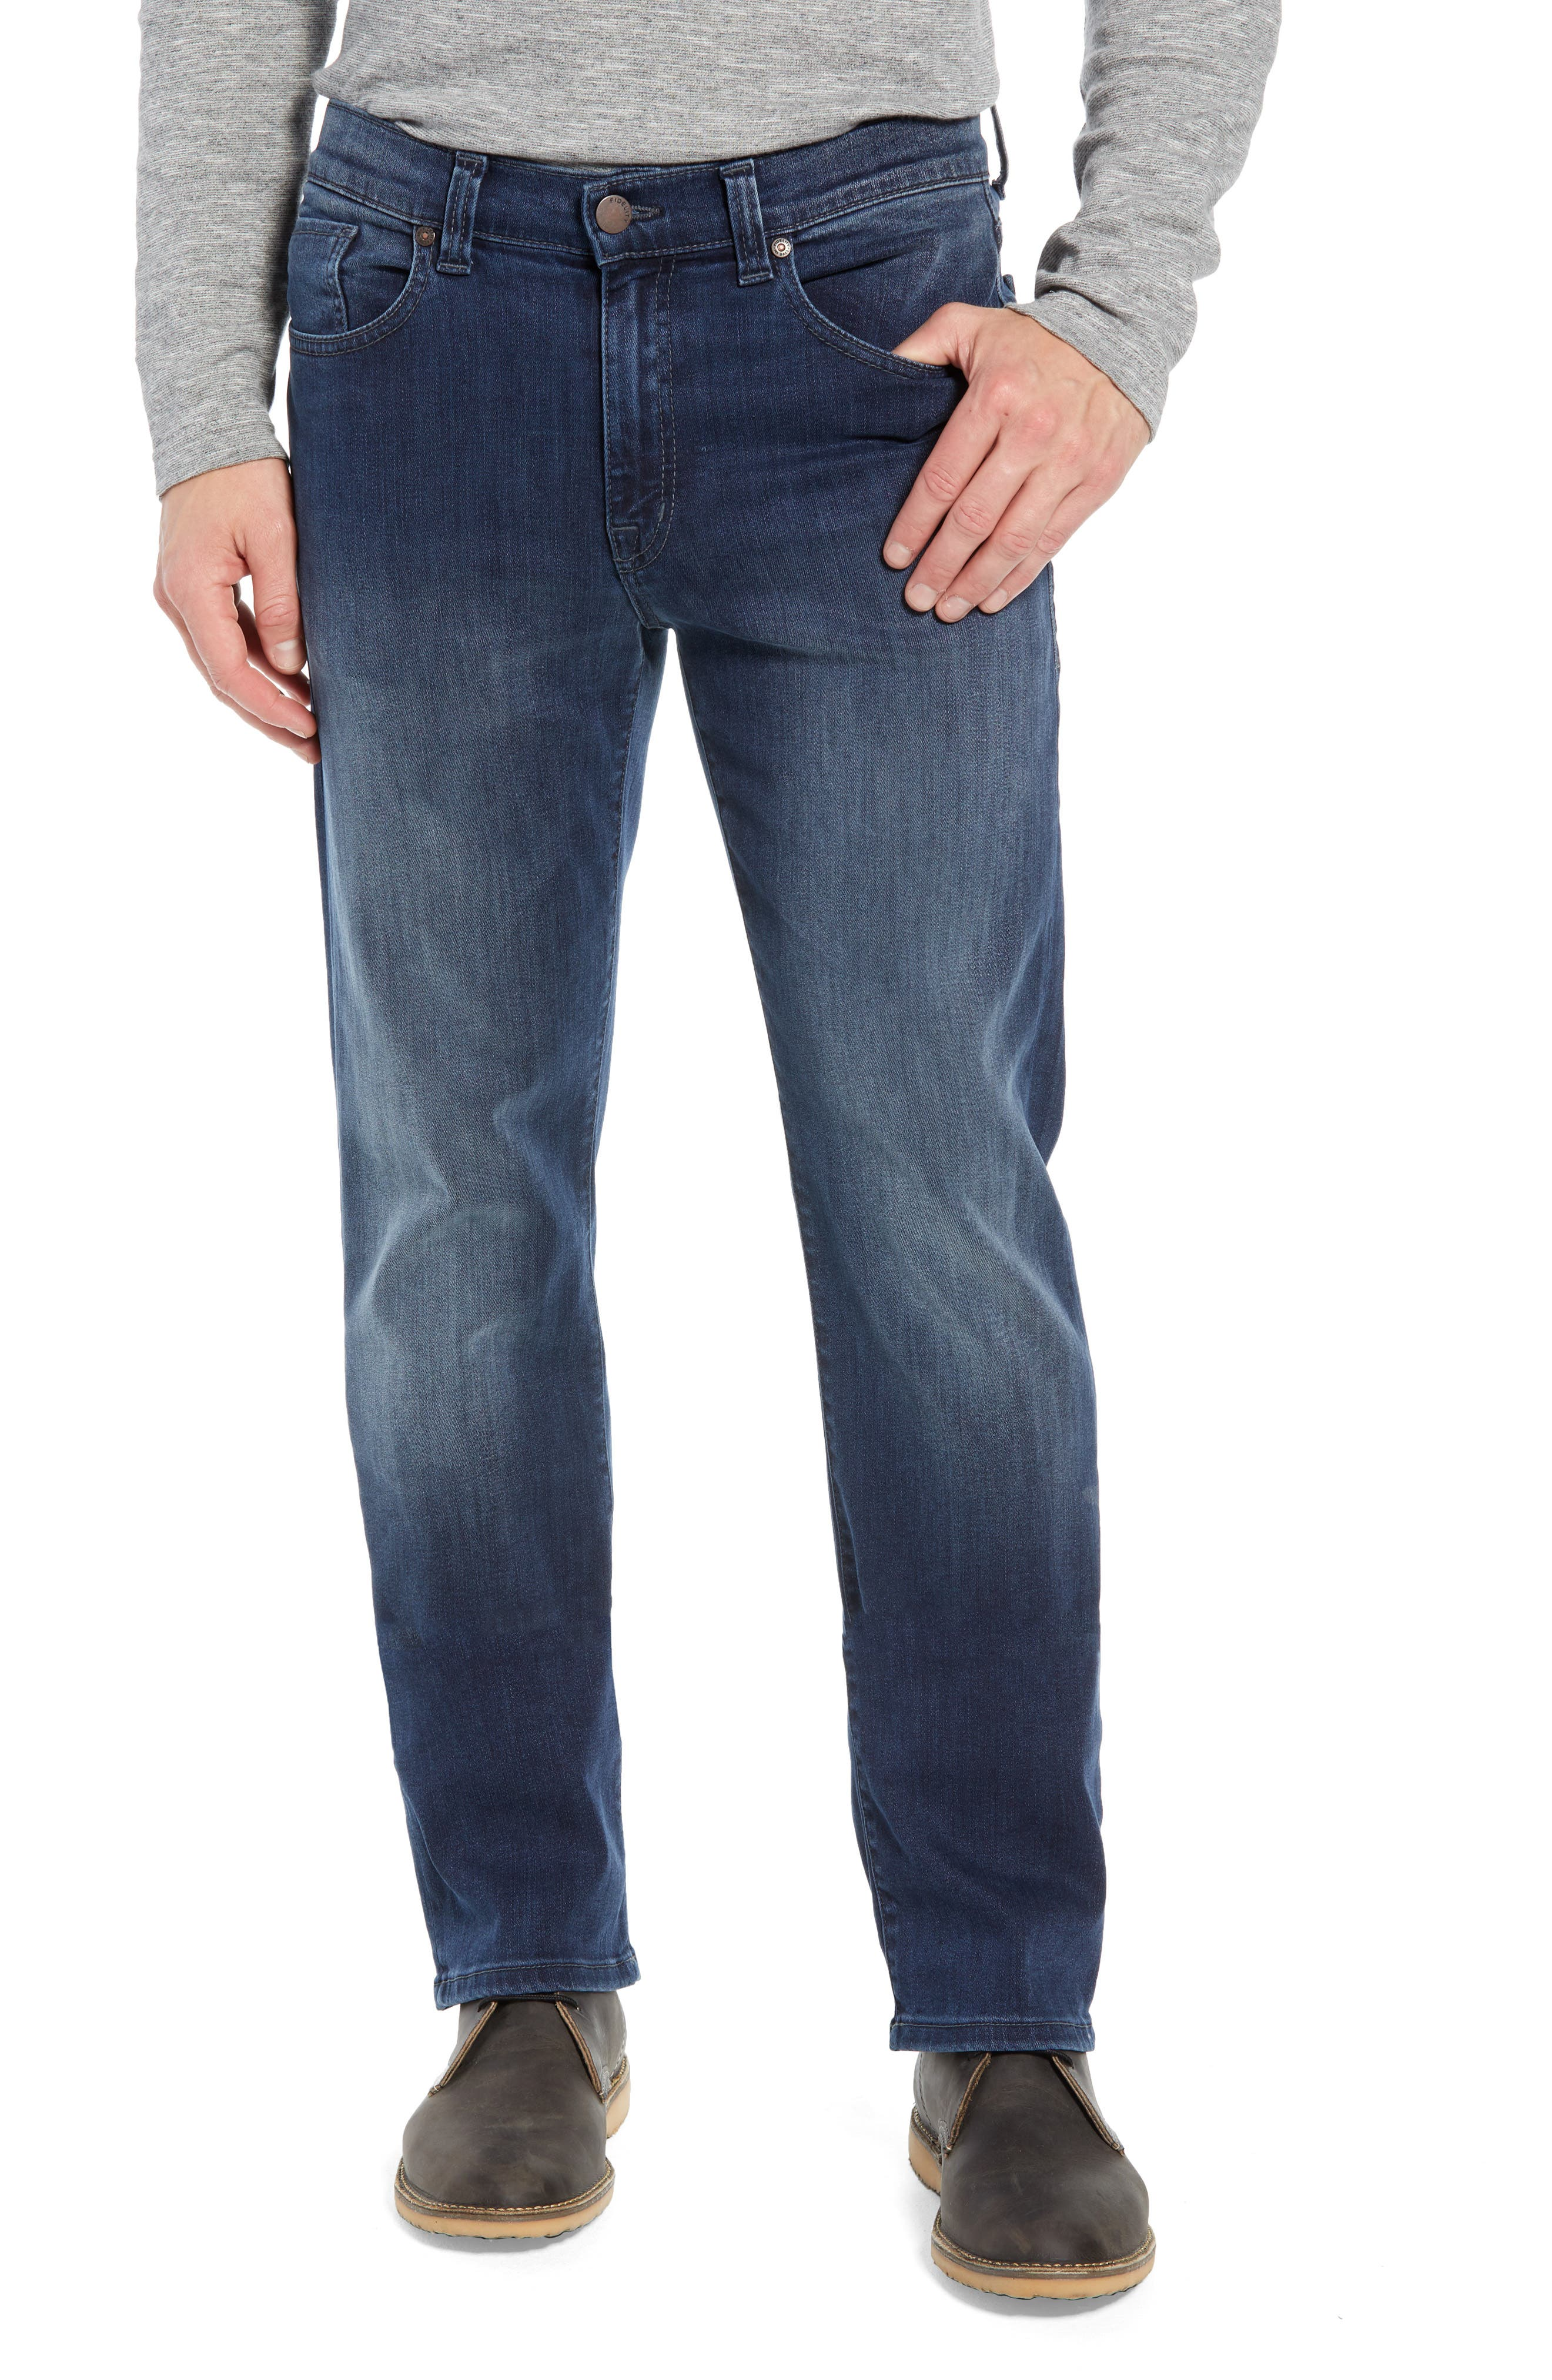 50-11 Relaxed Fit Jeans,                         Main,                         color, BEL AIR BLUE